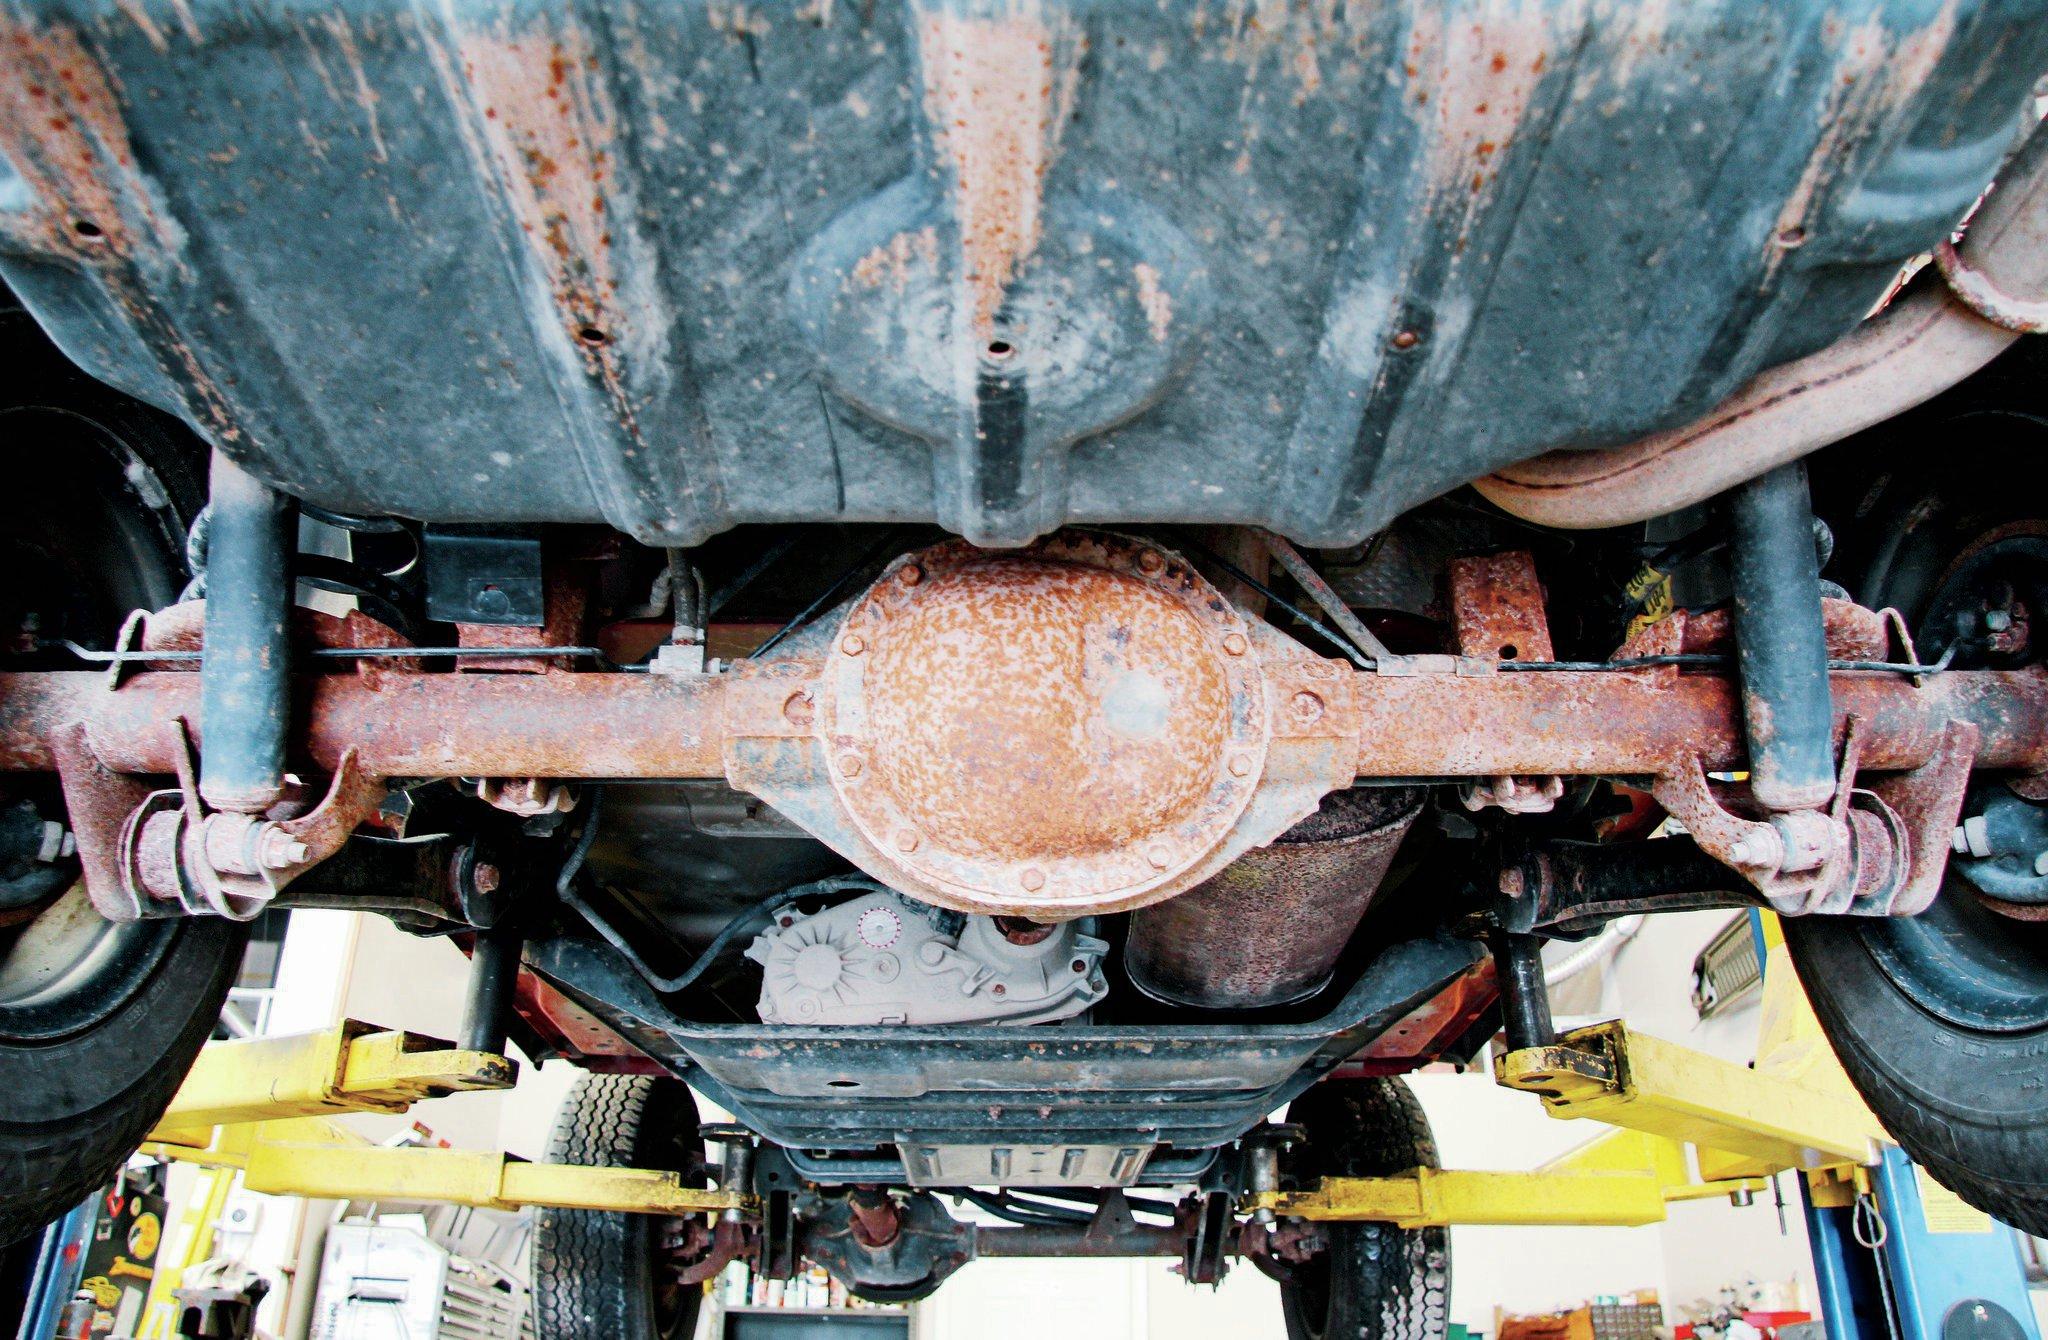 If the Jeep's rear axle looks like the one in this photo, you're going to want to find a replacement axle eventually. We simply can't get behind spending money on a Dana 35 axle. When you consider other available rear axle options, it's better to replace. The fact we know the Dana 35 is far less desirable than the Dana 44 you hope is actually out back won't always be an easy negotiation point. Don't let a Dana 35 rear axle stop you from getting the Jeep. Just remember to budget for a rear axle upgrade.